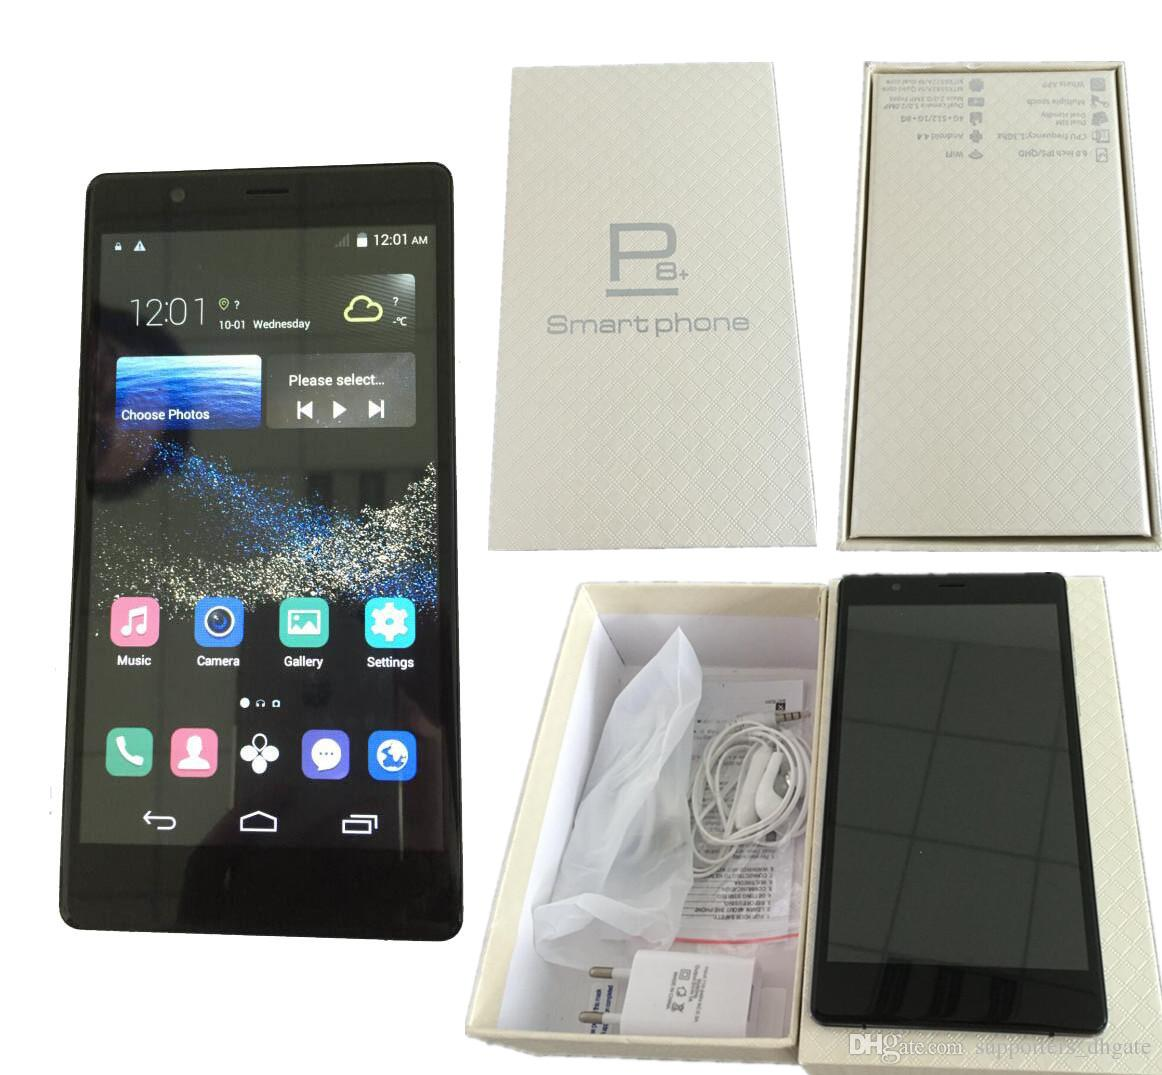 Huawei p8 plus phone Android 6.0 inch MTK6572 Dual core smartphone cell phones dual Sim 512 RAM 4GB ROM show 32GB Fake 4G LTE free DHL